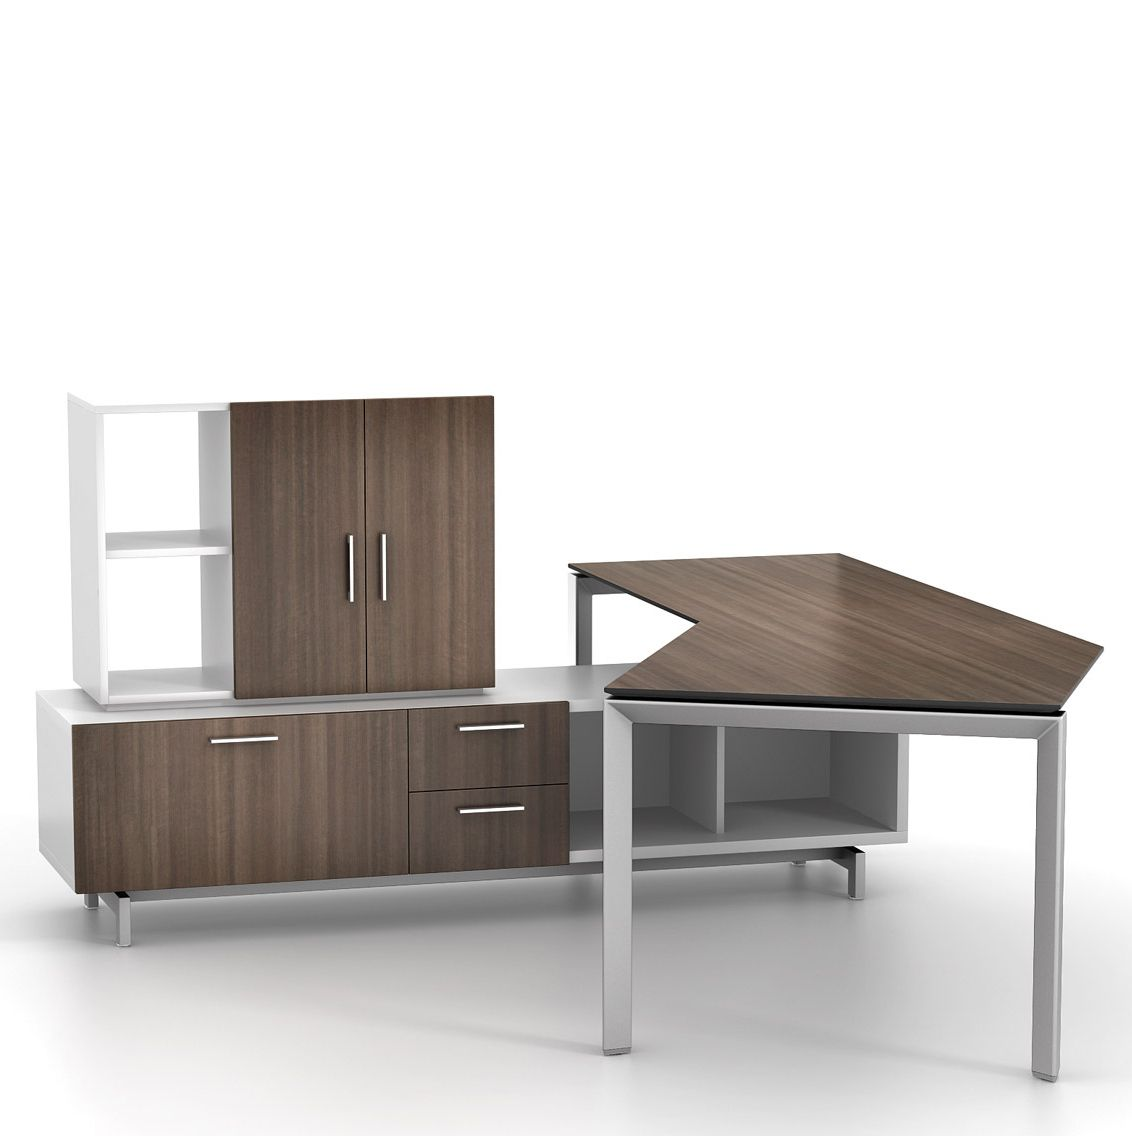 Miro Desks Include Eight Stand Alone Shapes That Can Be Configured Individually Or With Other To Create A Wide Range Of Workstation Options